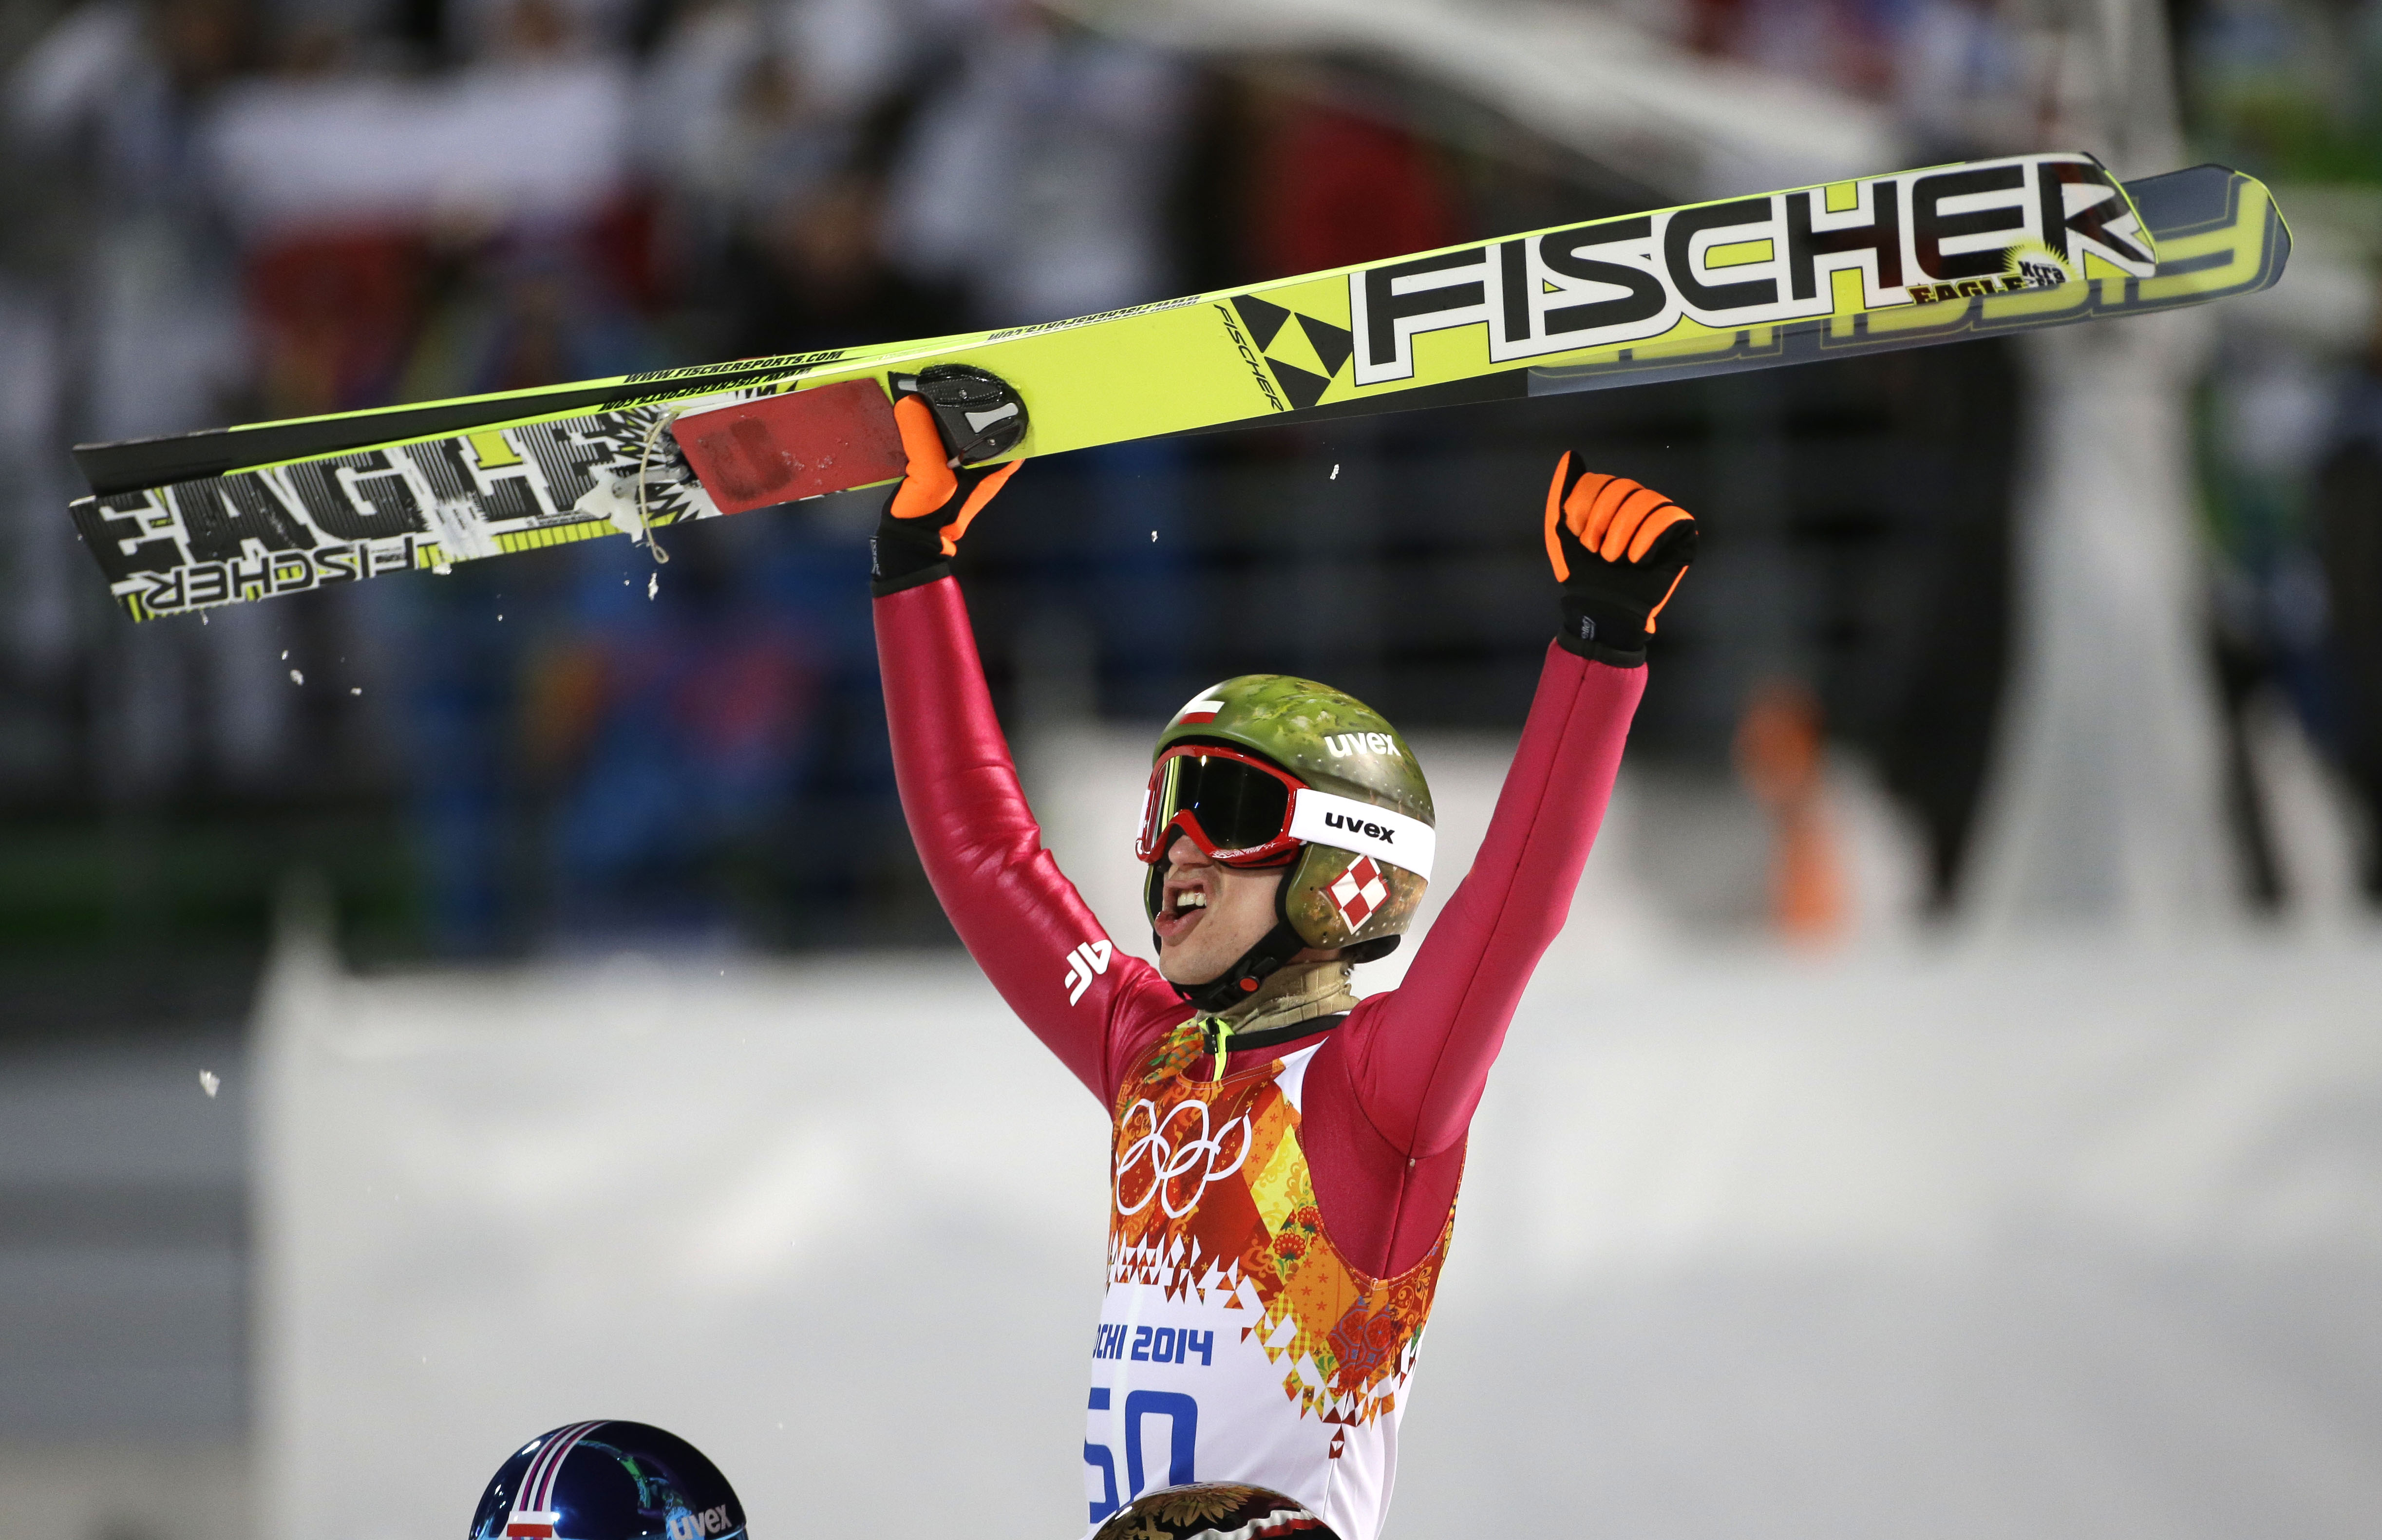 Poland's Kamil Stoch celebrates winning the gold medal during the men's normal hill ski jumping final at the 2014 Winter Olympics, Sunday, Feb. 9, 2014, in Krasnaya Polyana, Russia. (AP Photo/Gregorio Borgia)